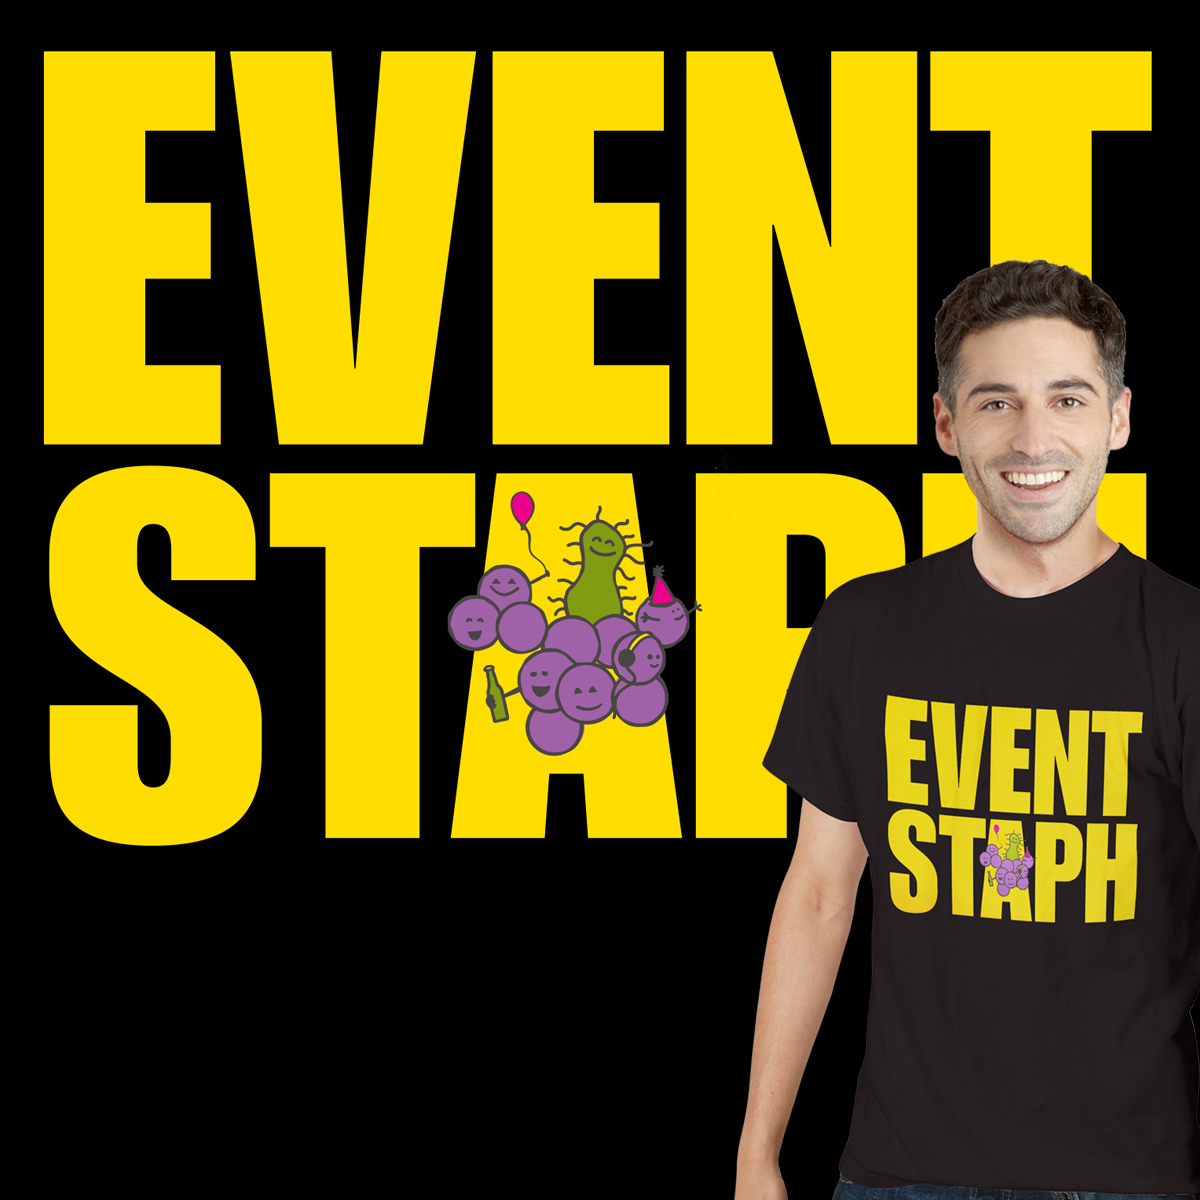 Event Staph